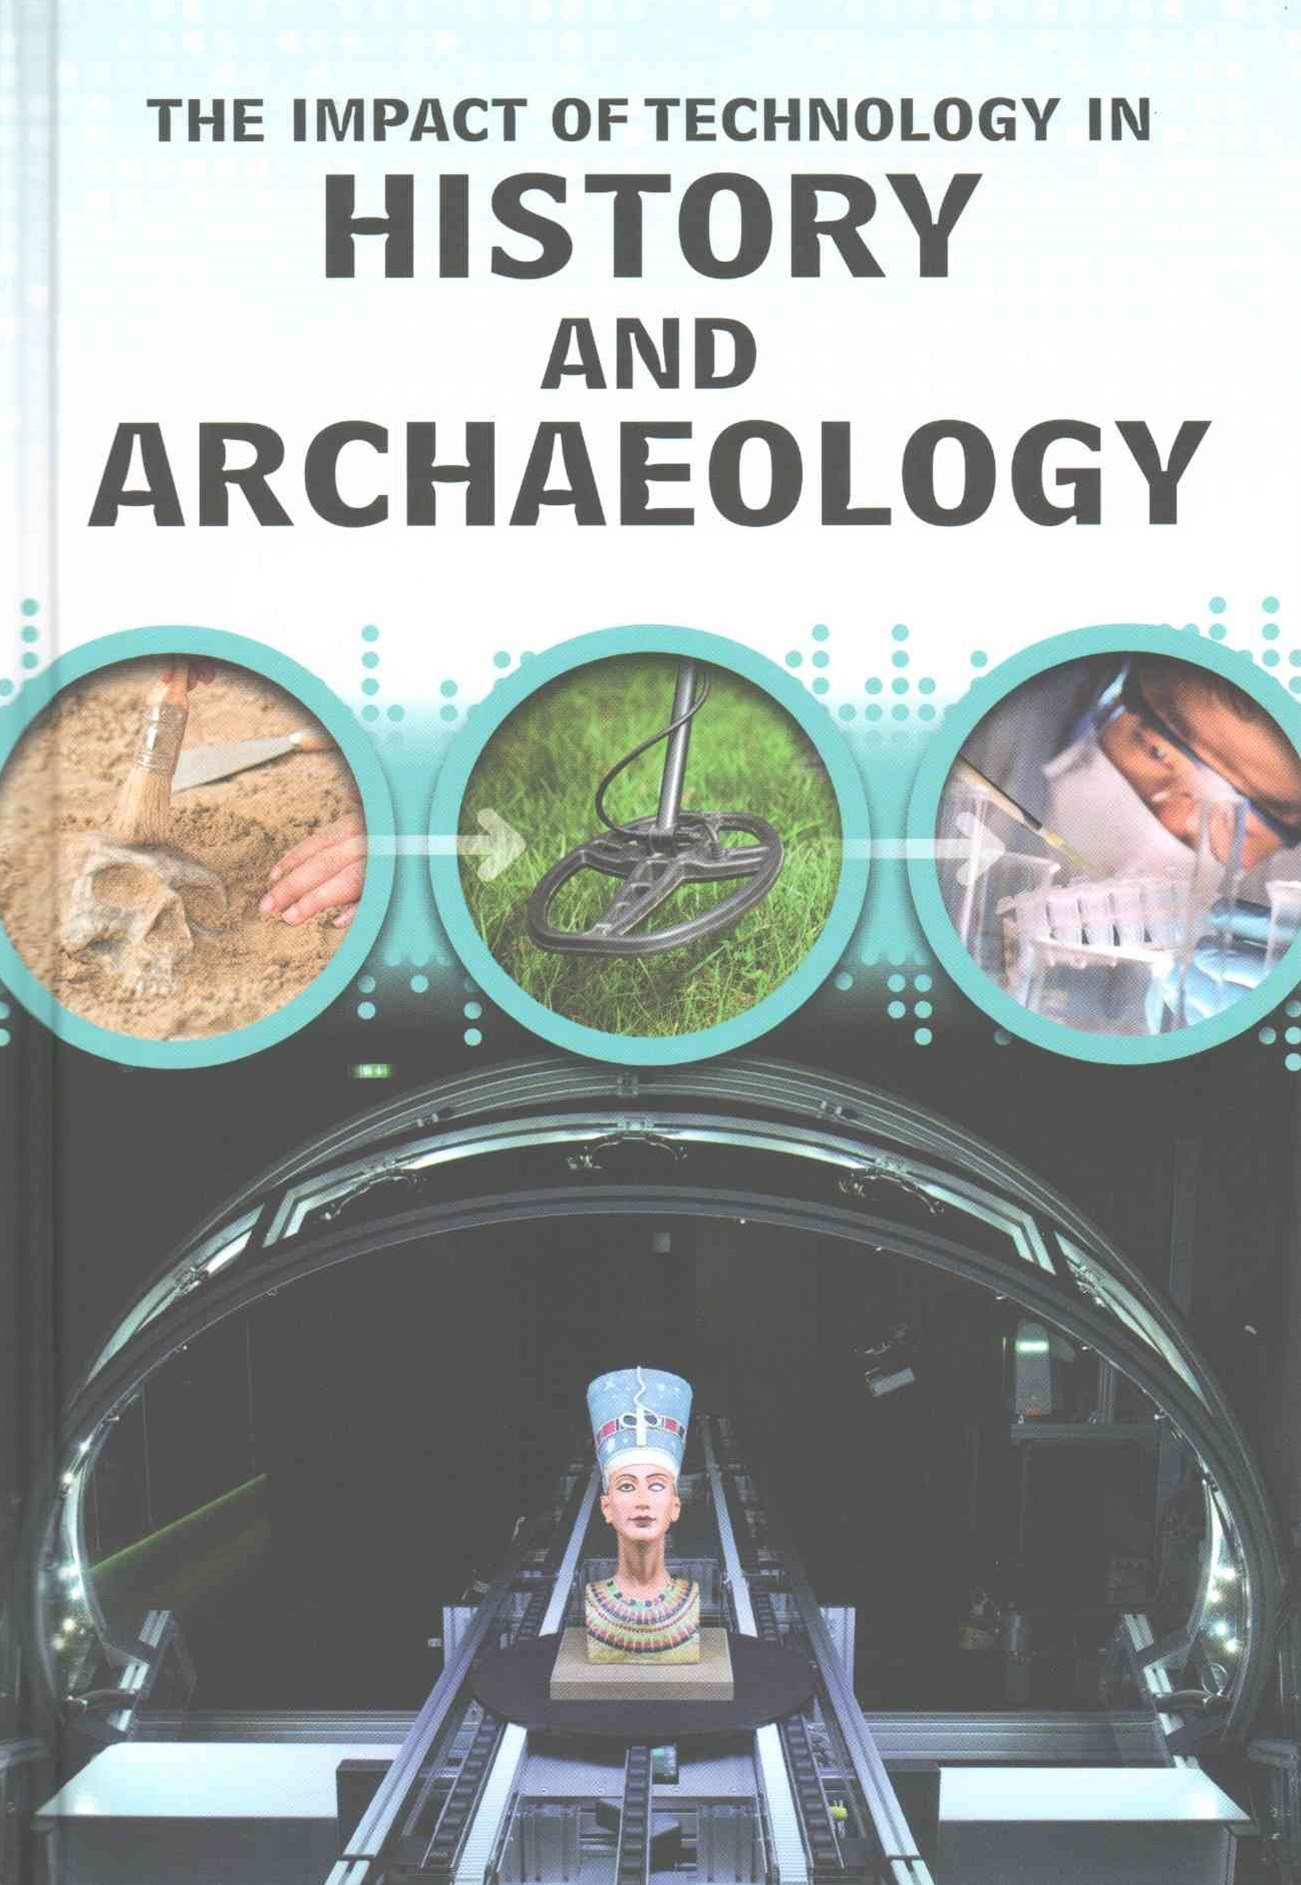 The Impact of Technology in History and Archaeology